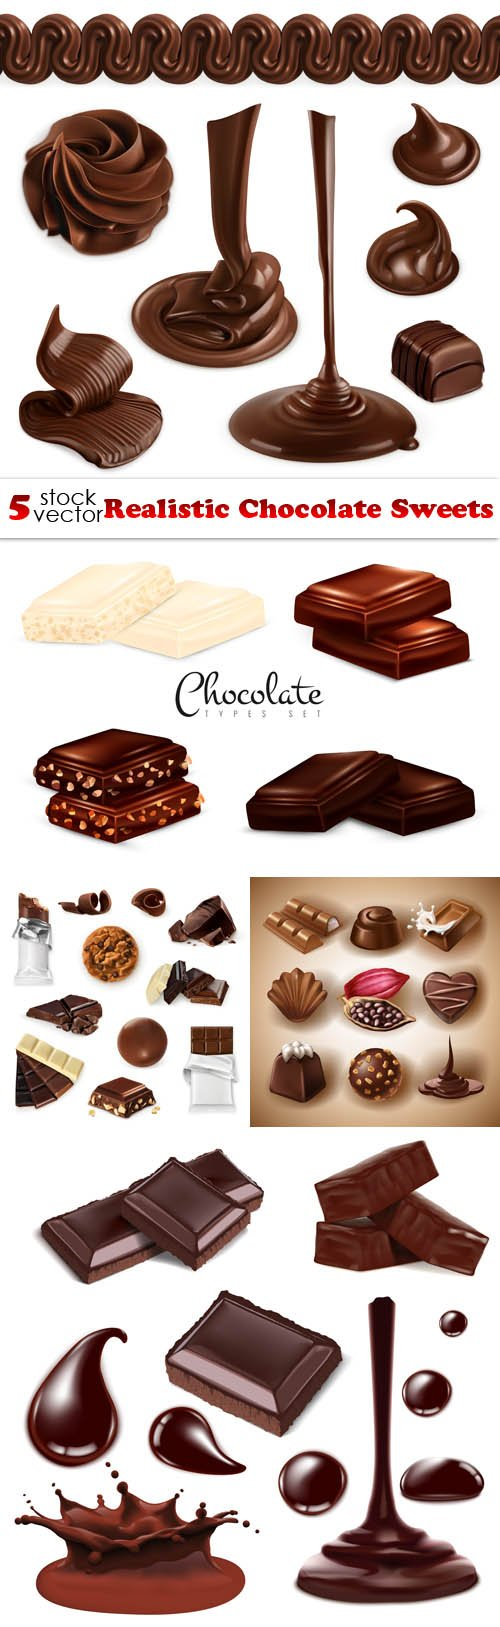 Vectors - Realistic Chocolate Sweets